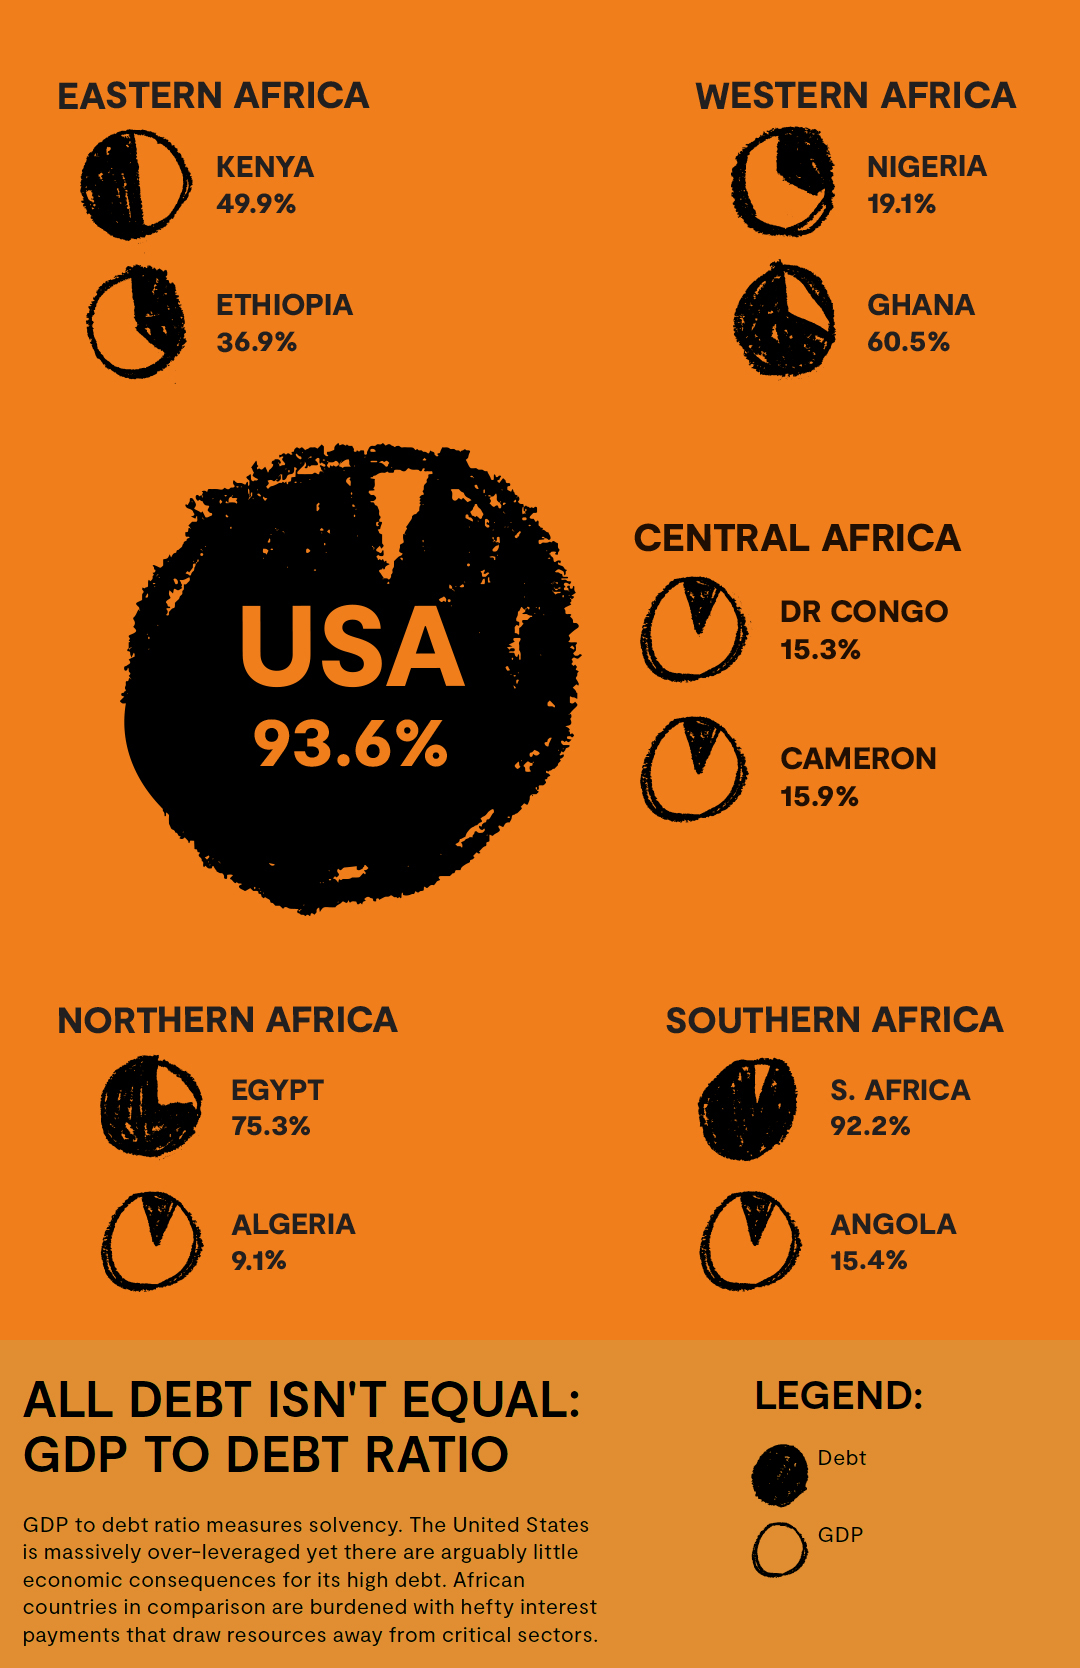 chart showing debt to GDP ratio of African countries compared to the US